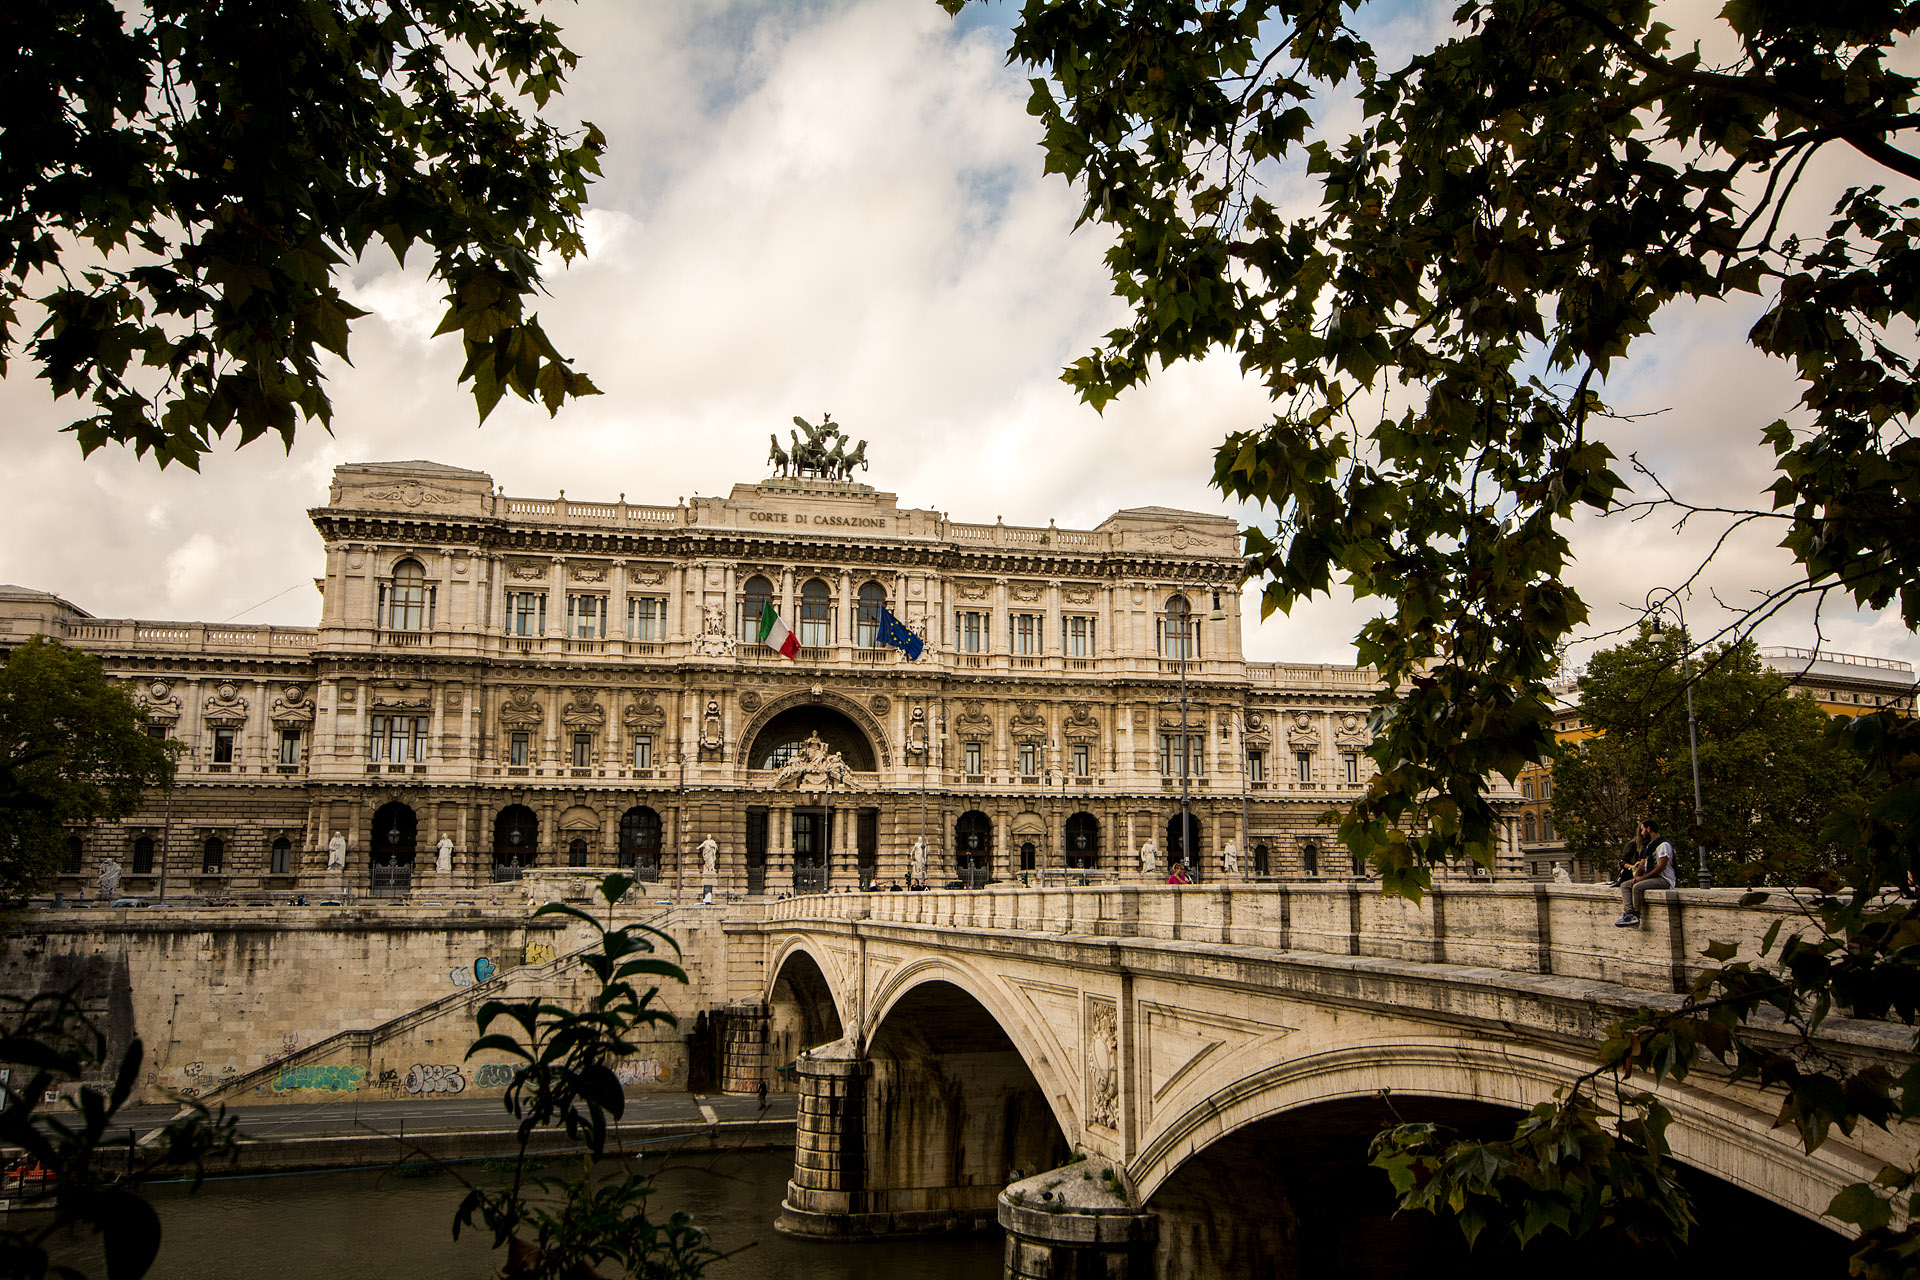 Supreme Court of Cassation & Ponte Umberto I